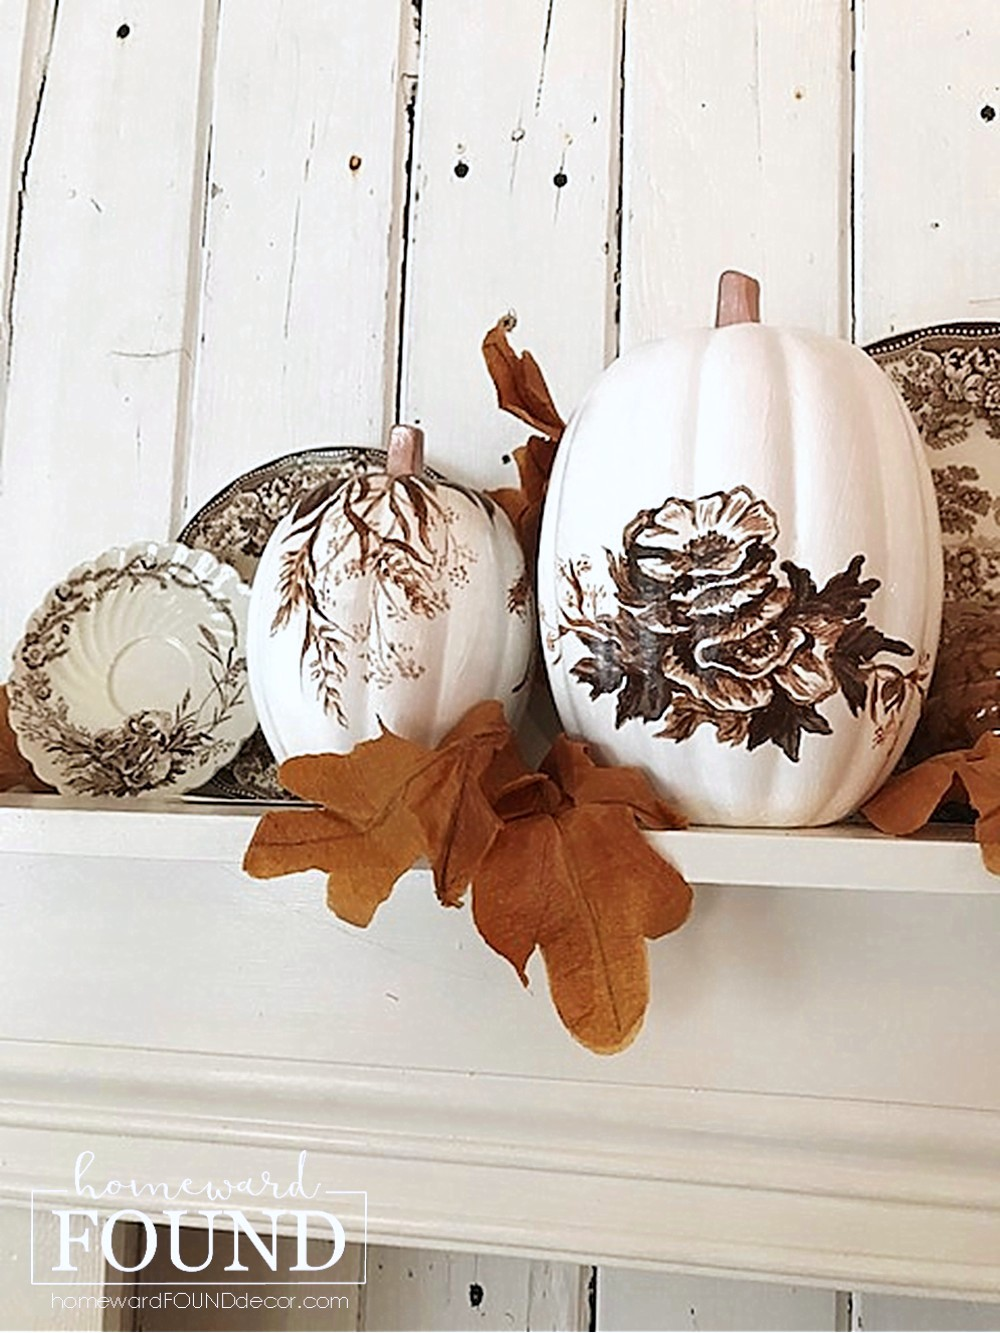 Hand painted toile floral pumpkins by Homeward Found, featured on DIY Salvaged Junk Projects 554 on Funky Junk!